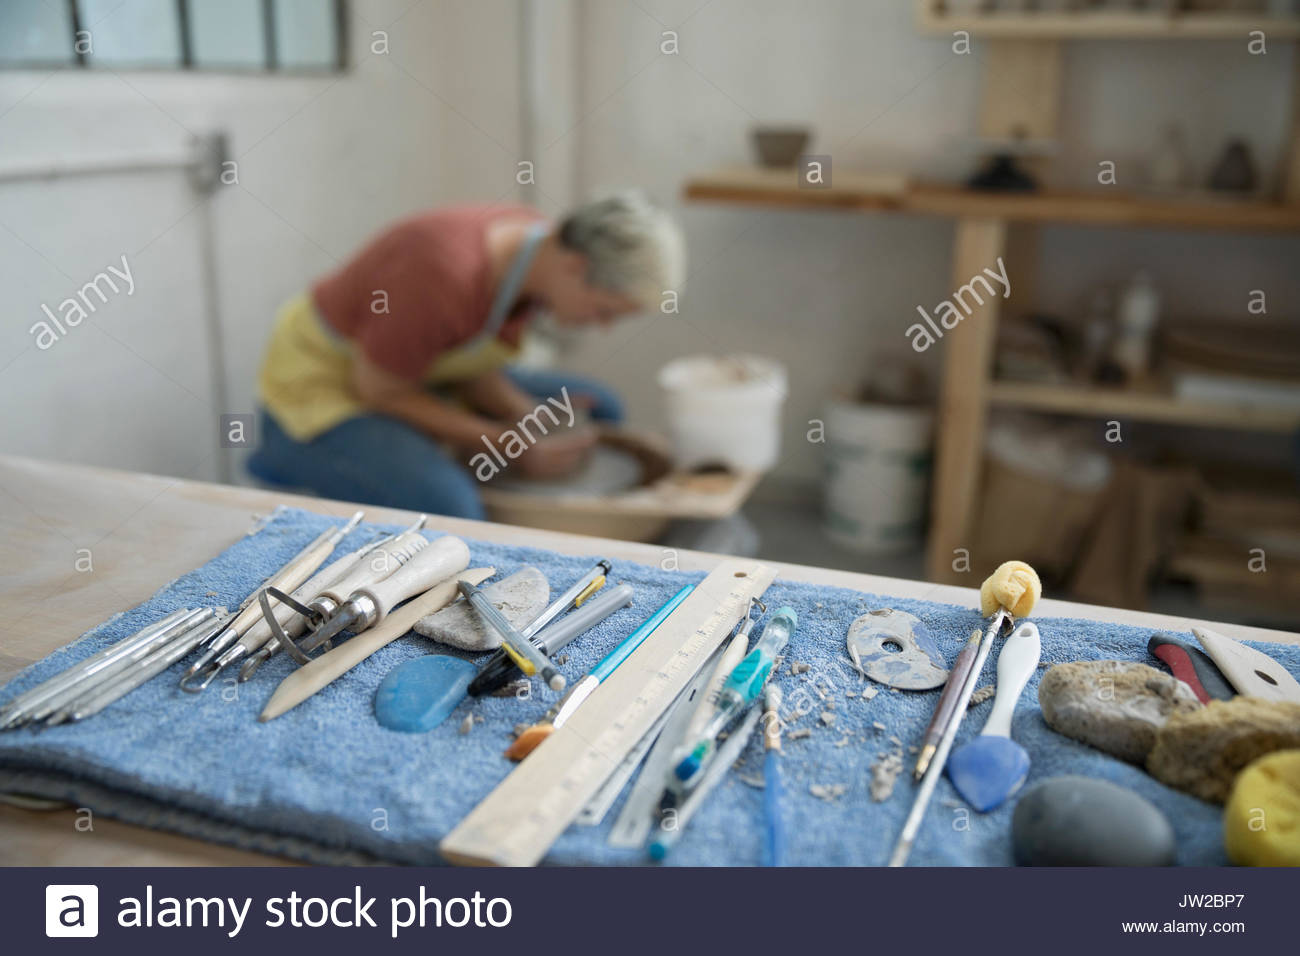 Female potter using pottery wheel behind tools on workbench in art studio - Stock Image